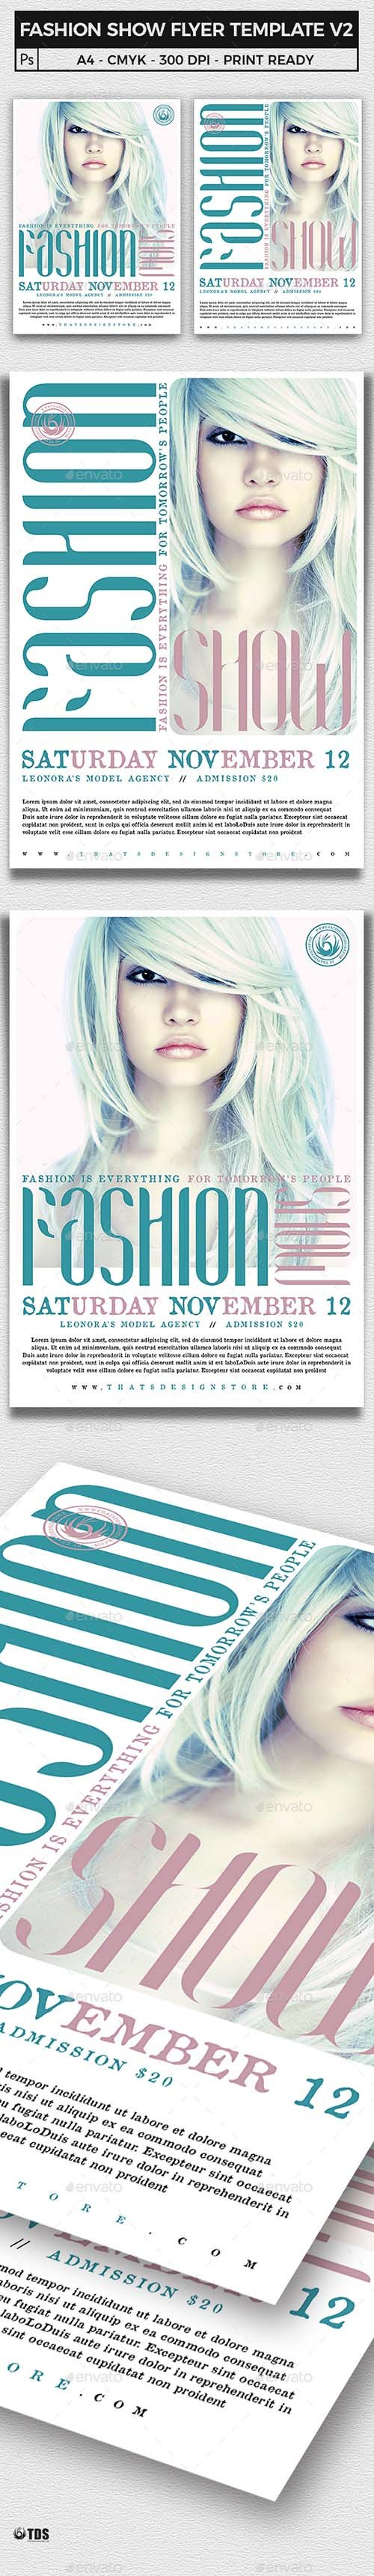 Fashion Show Flyer Template V2 15801140